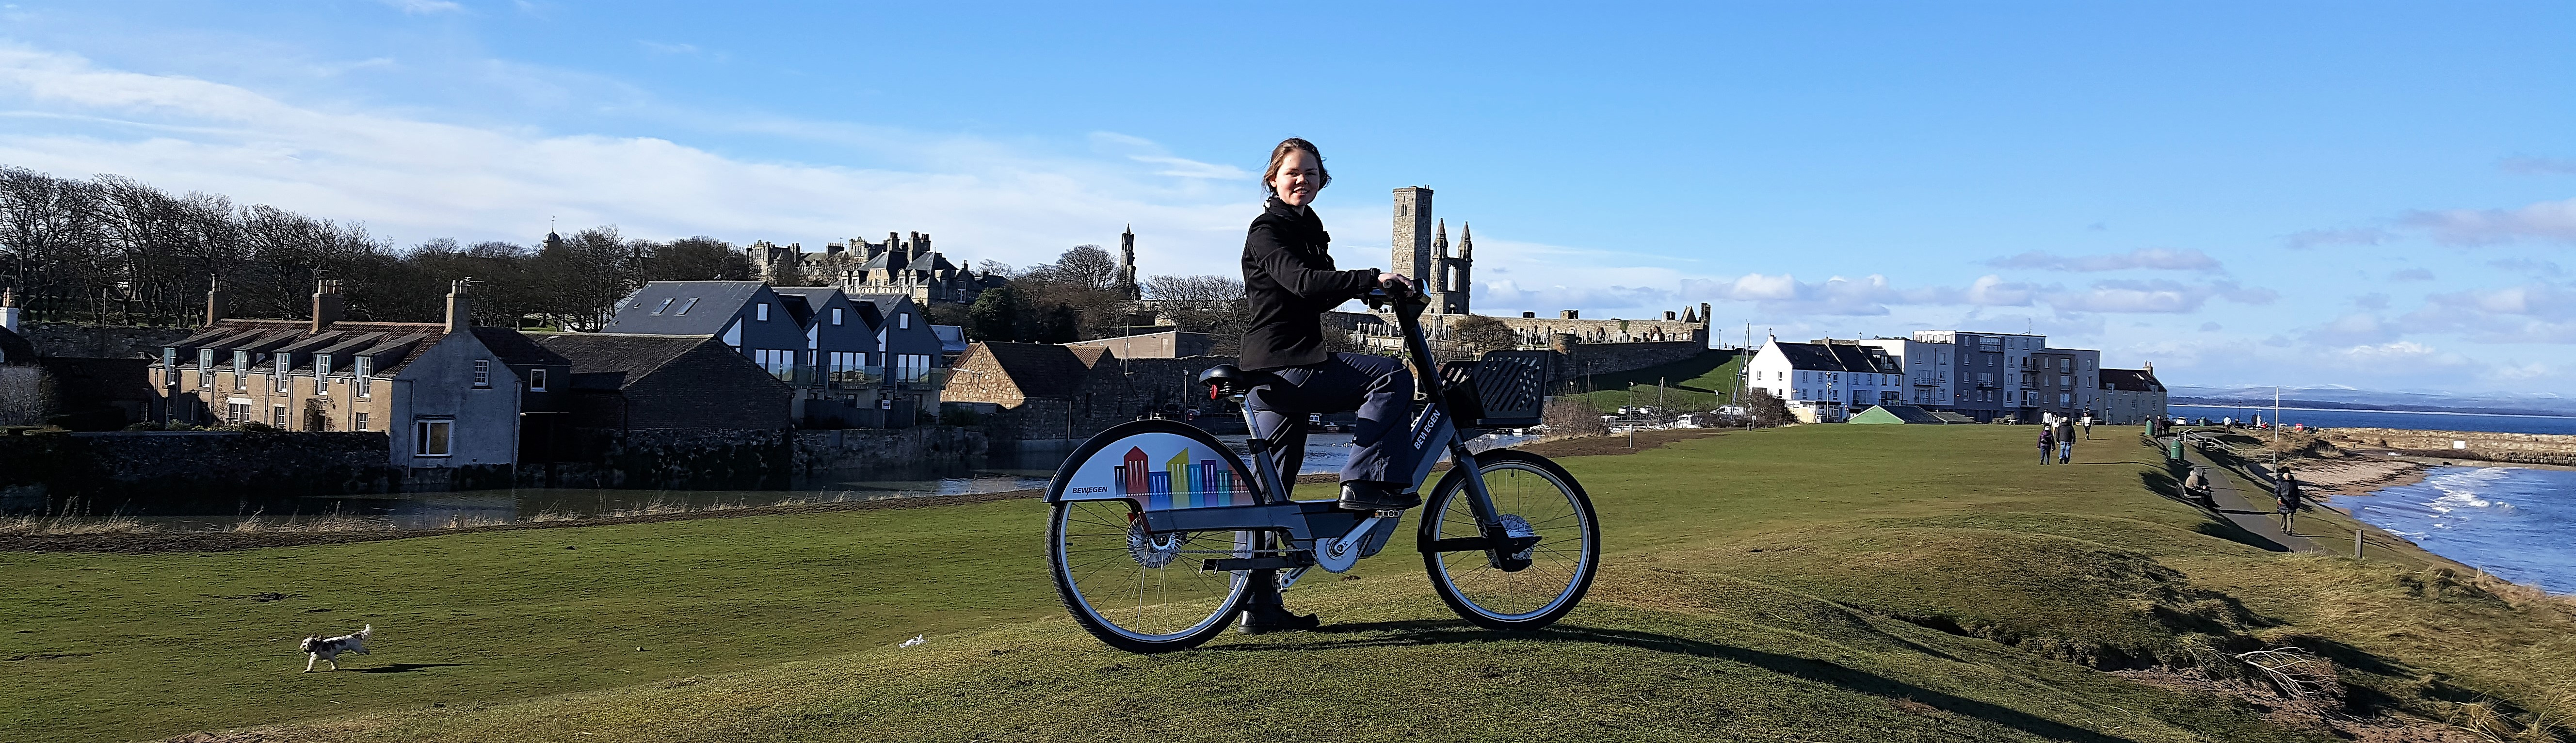 Wegoshare Managing Bike Share Operations in Forth Valley, Scotland